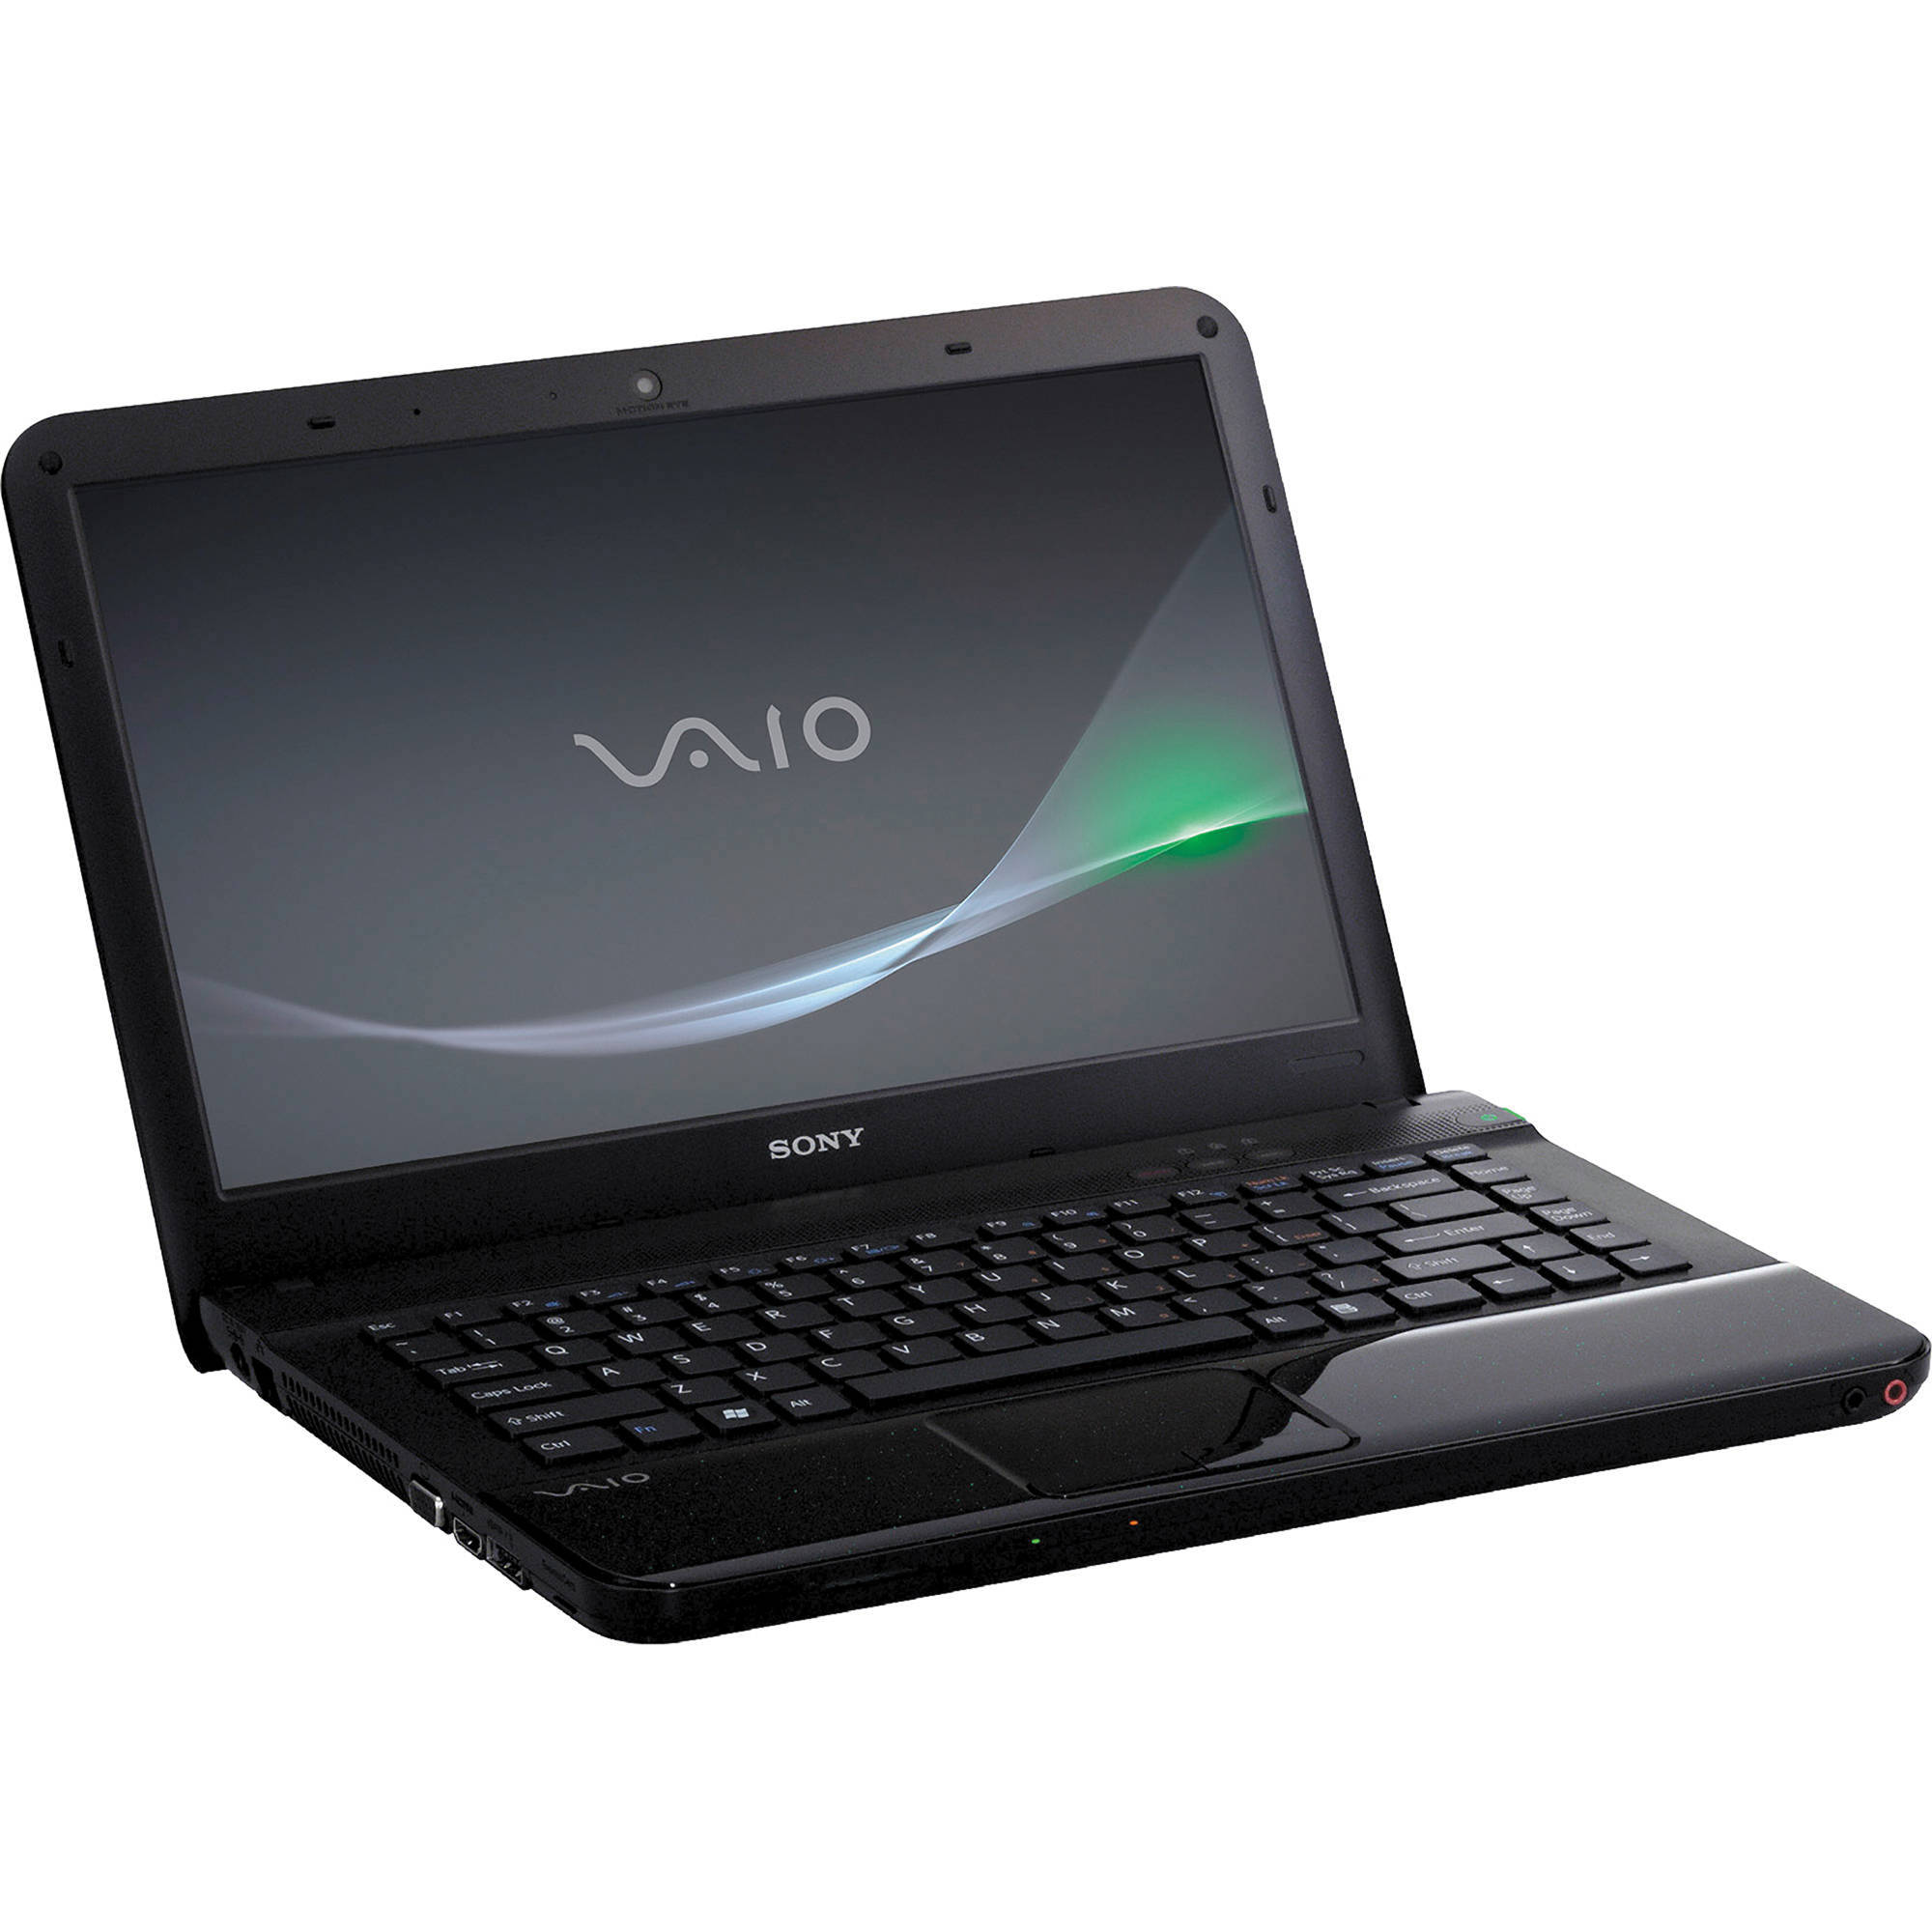 Sony Vaio VPCF132FX/B Renesas USB 3.0 Windows 8